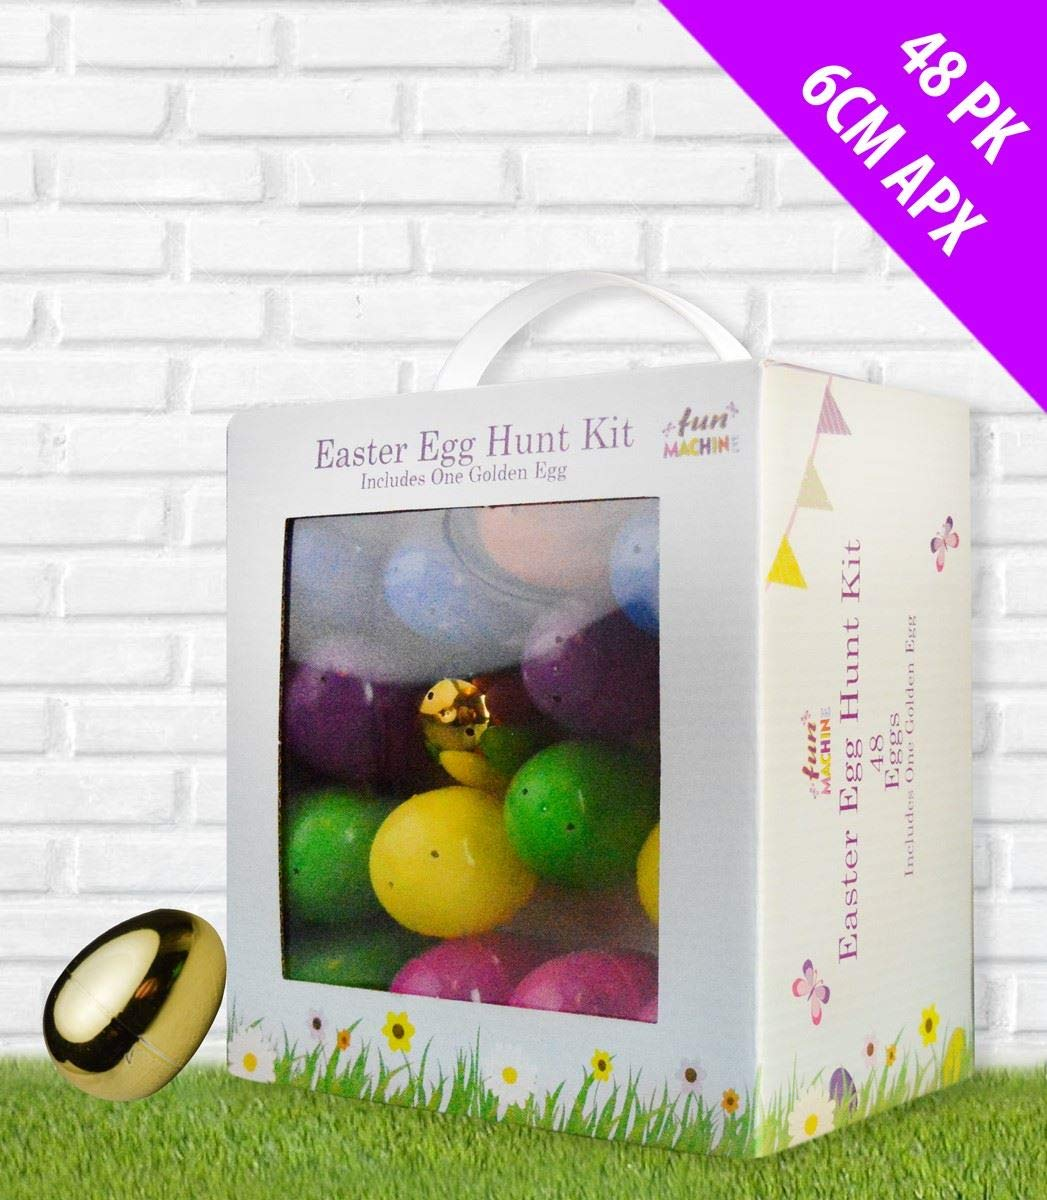 10 Fillable Eggs Easter Surprise Egg Chocolate Hunt Decoration Fill Party GOLDEN